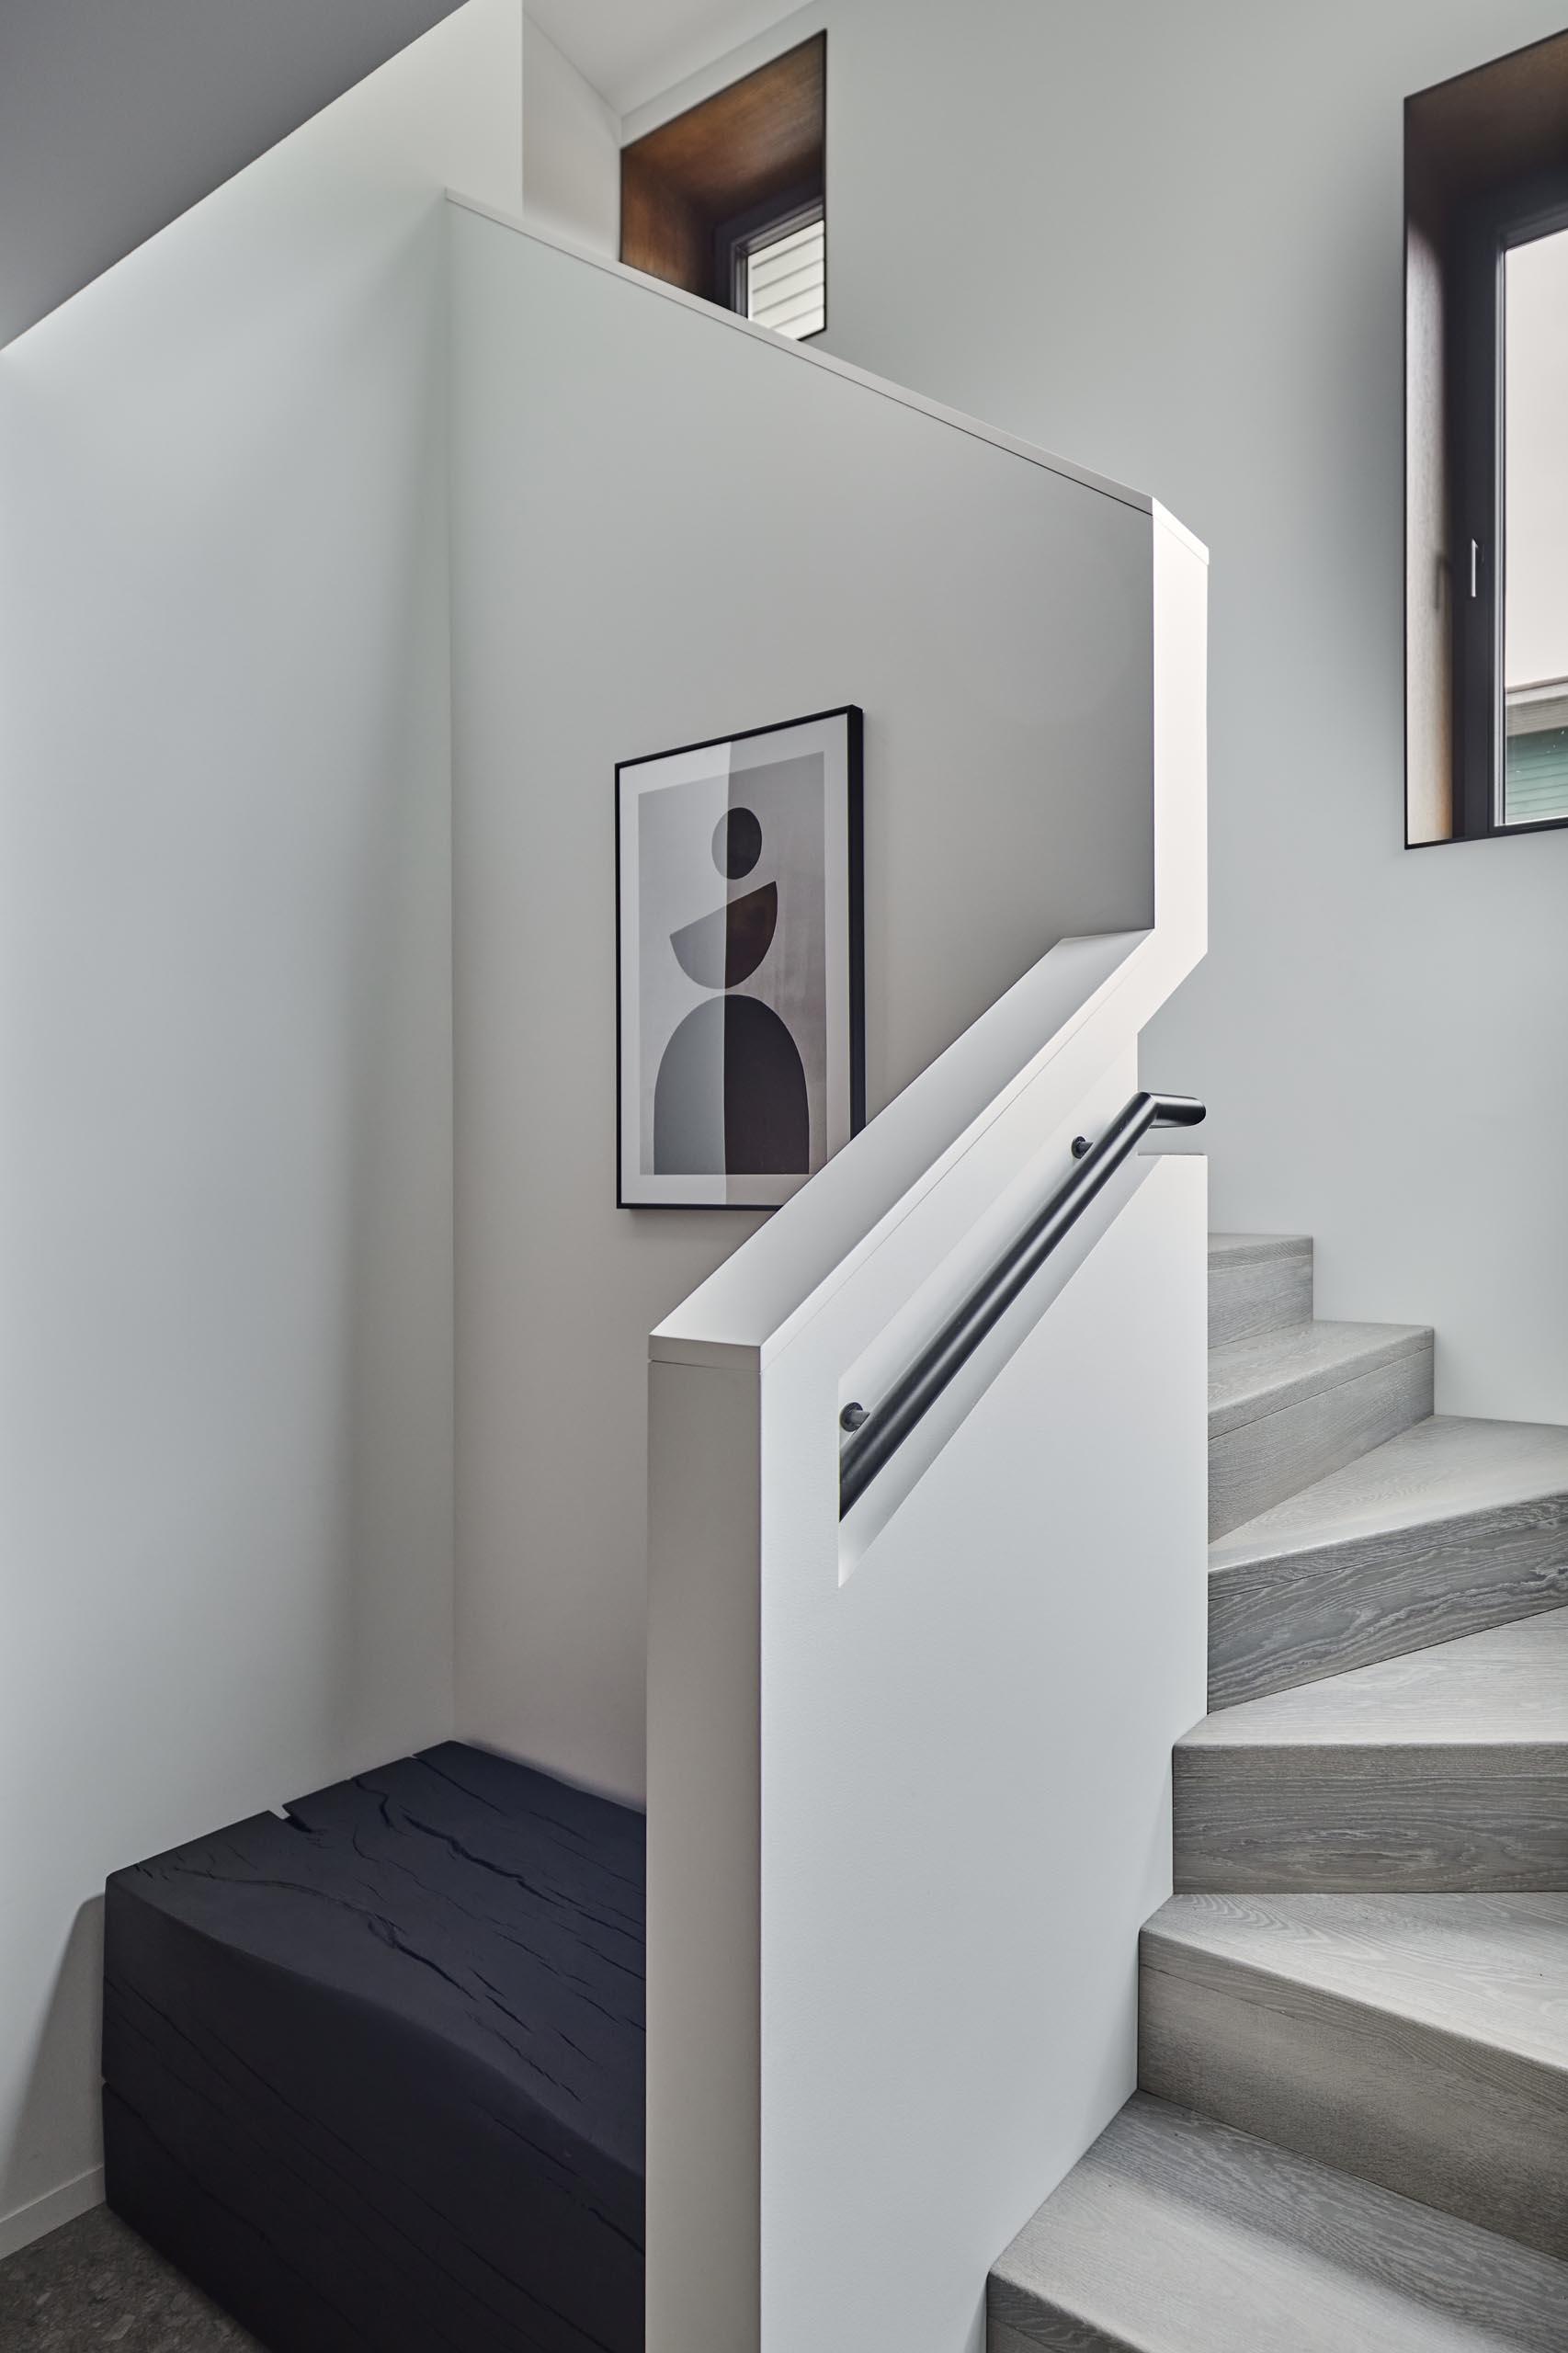 This modern entryway includes wood cabinets and a burnt wood bench. Stairs with a built-in handrail lead to the upstairs.